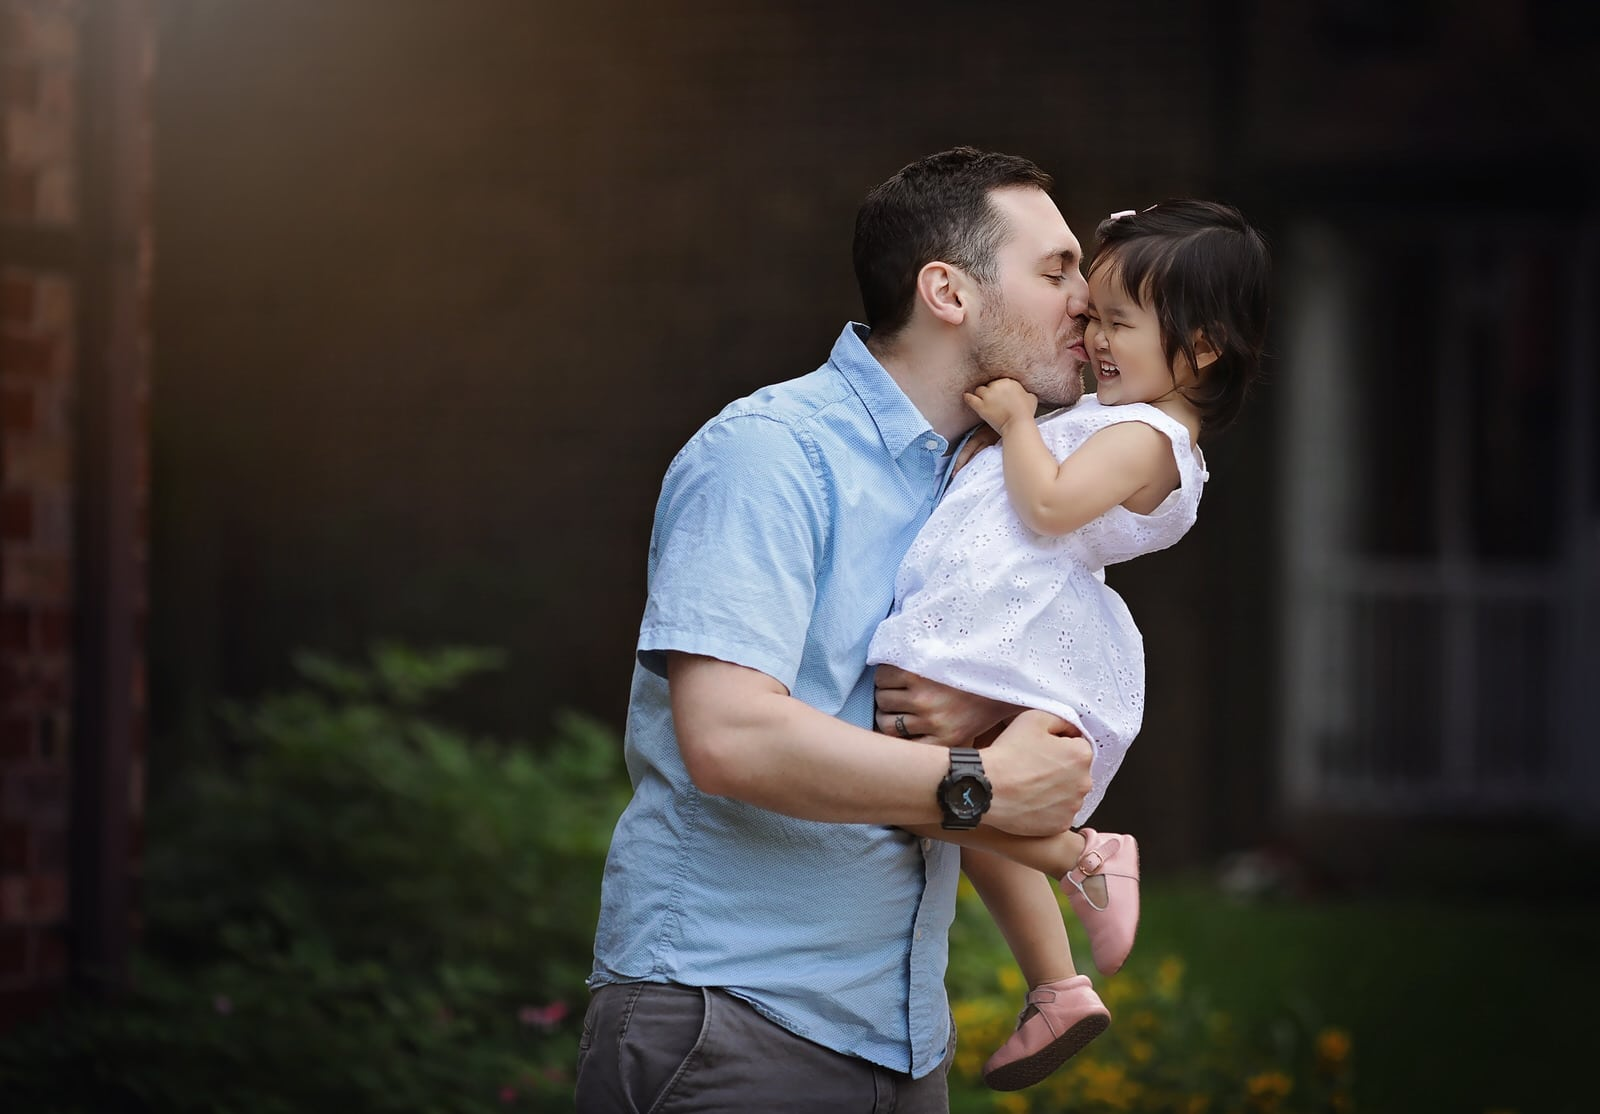 dad kisses his daughter on the cheek in sweet portrait by harrisburg family photographer